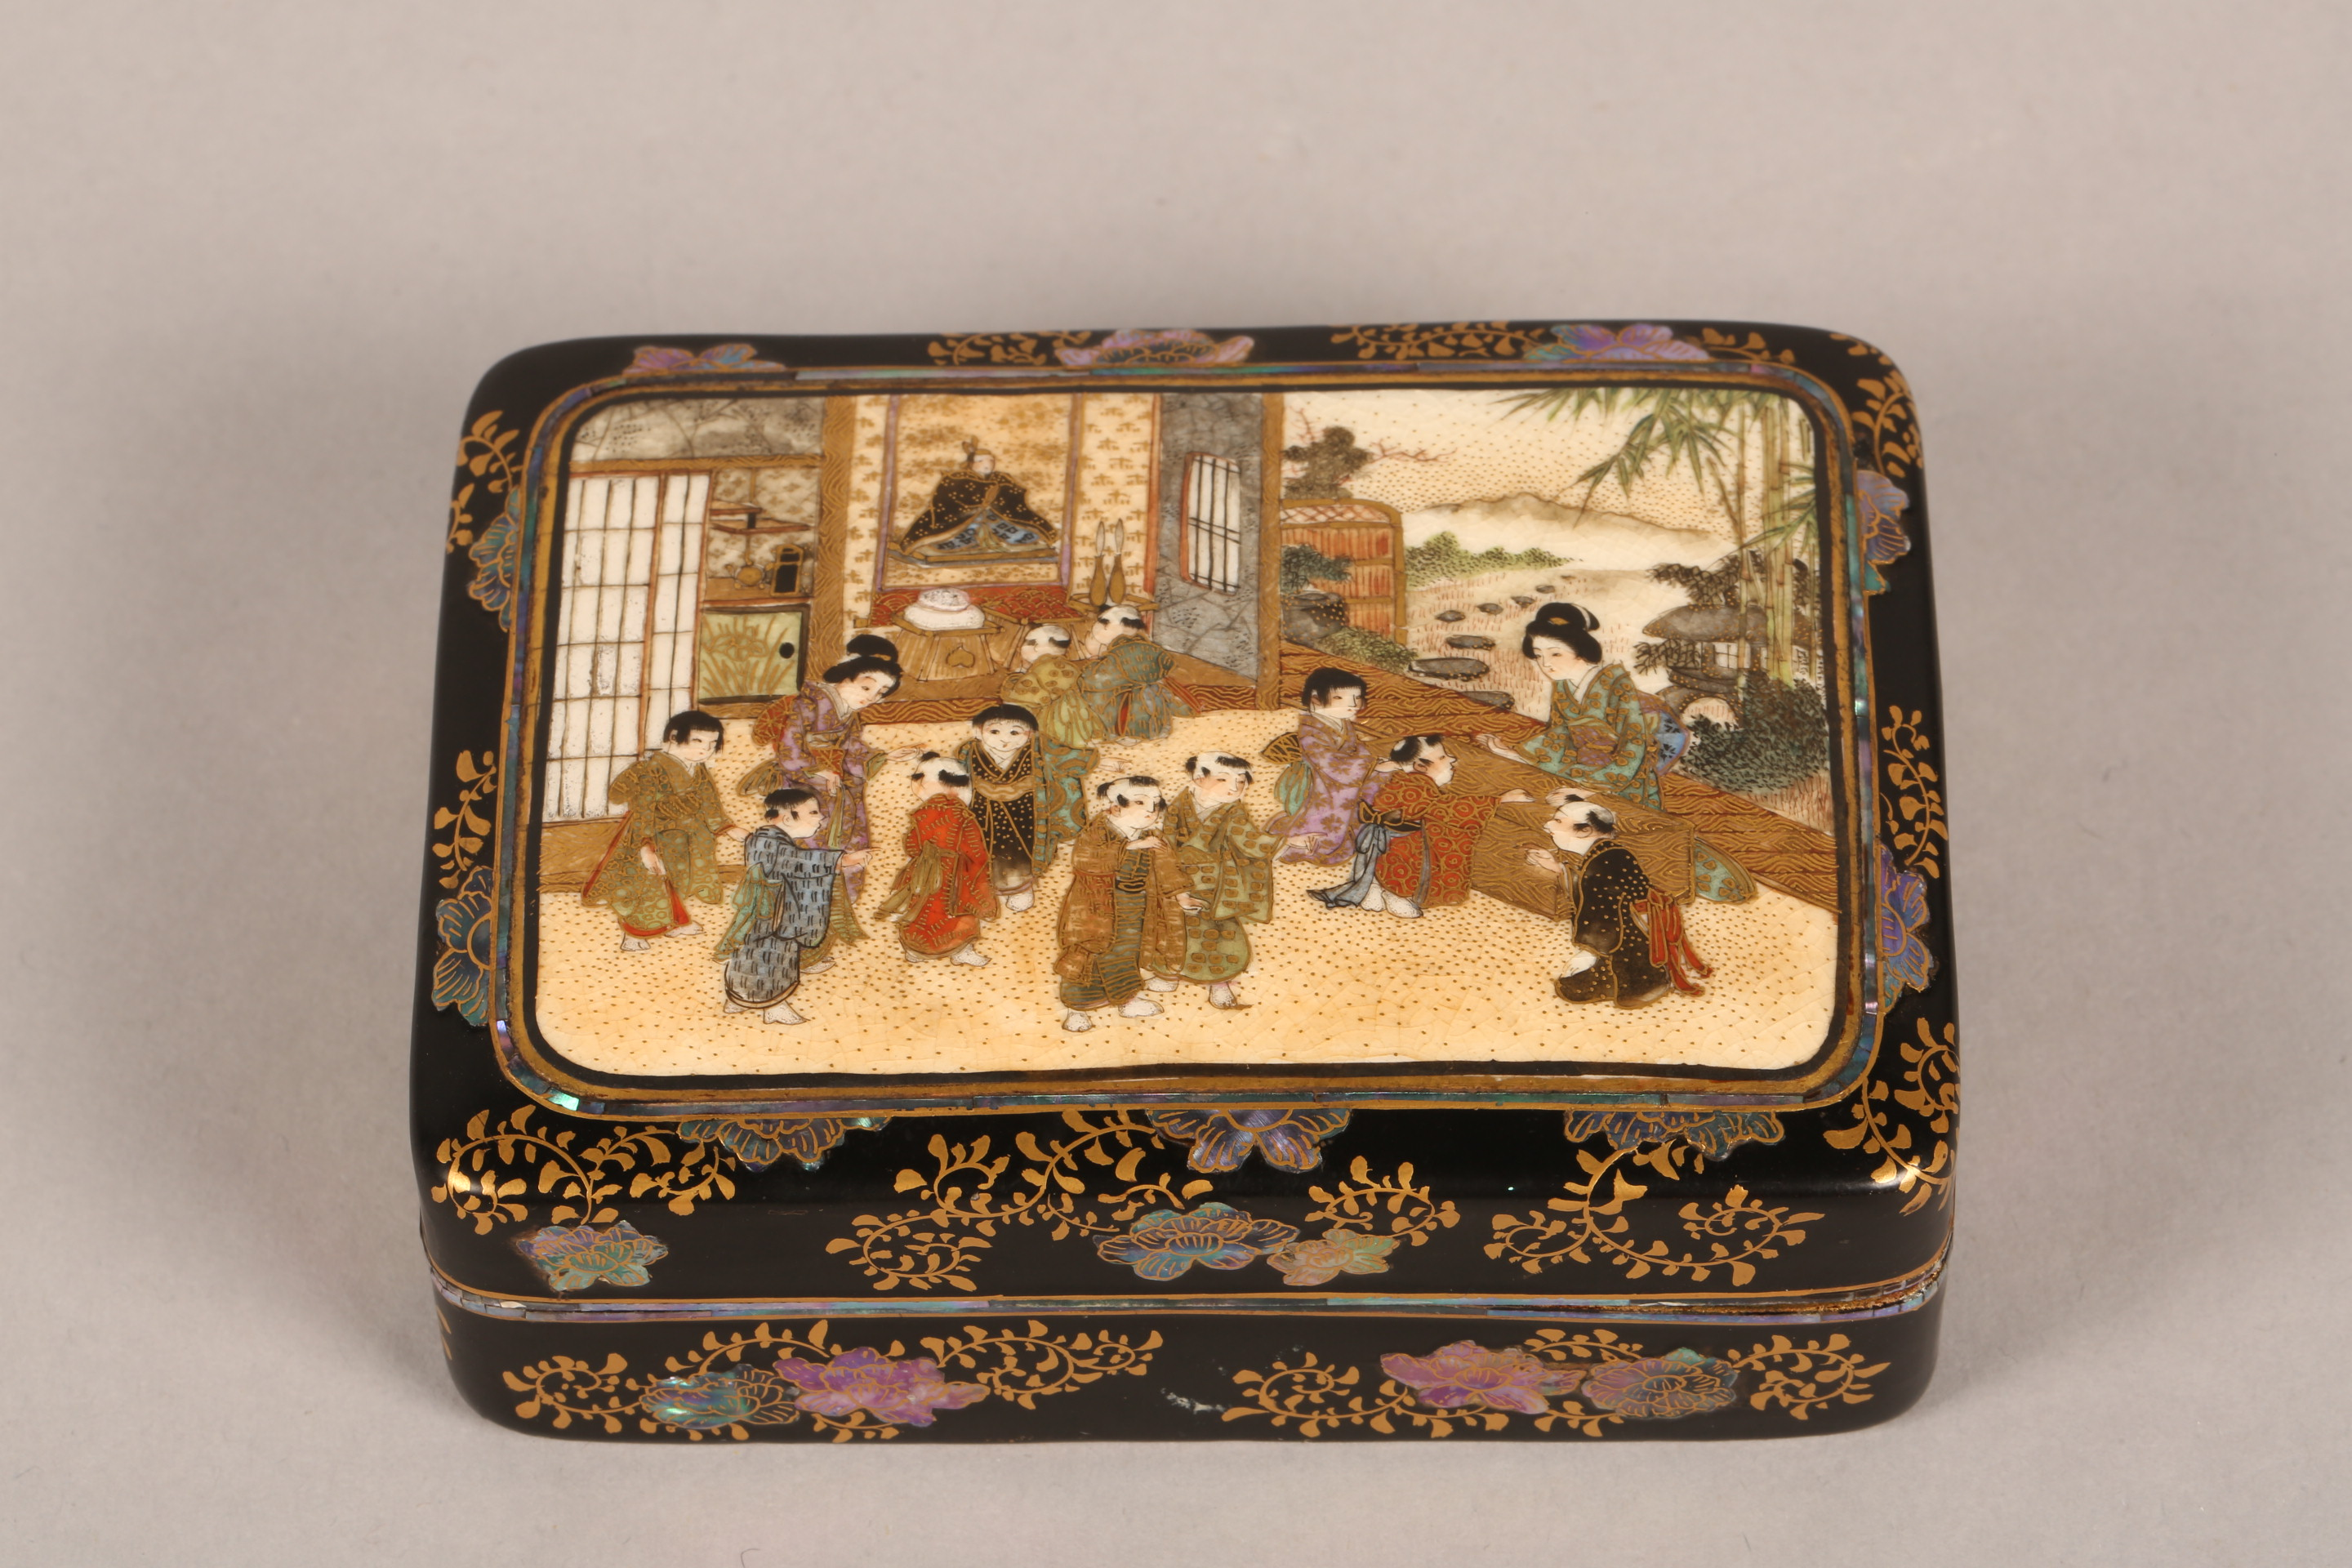 Japanese satsuma rectangular trinket box and cover, decorated internally and externally with - Image 8 of 10